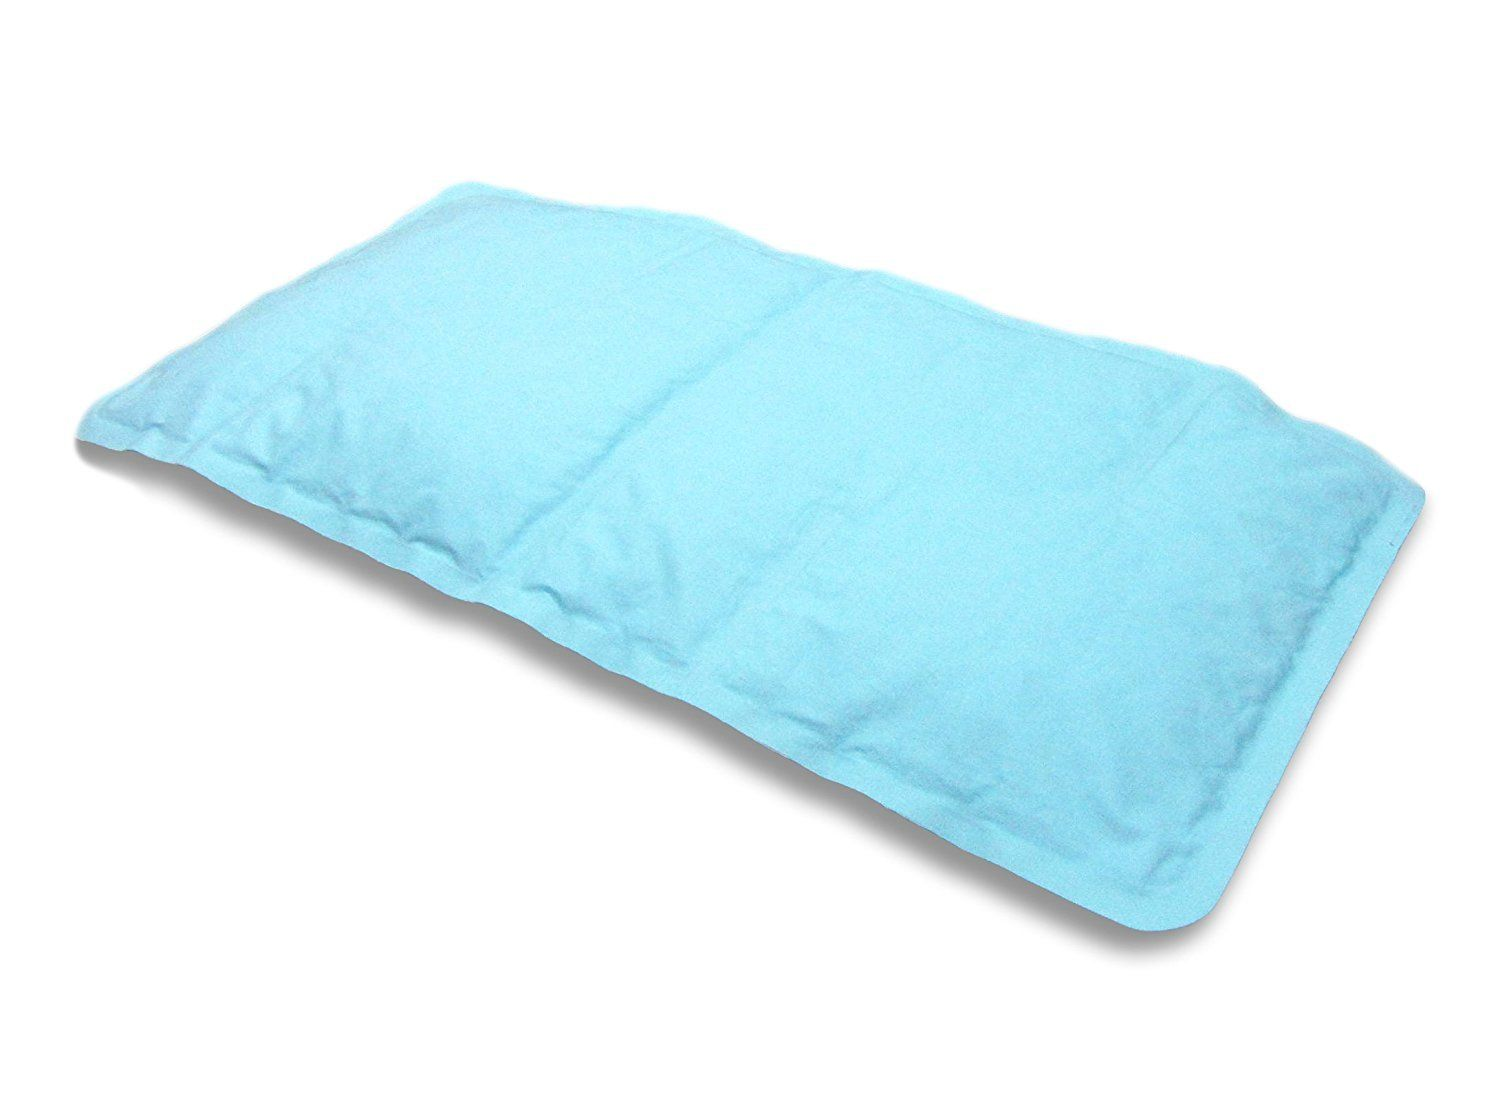 Best sleep products: Cooling pillows